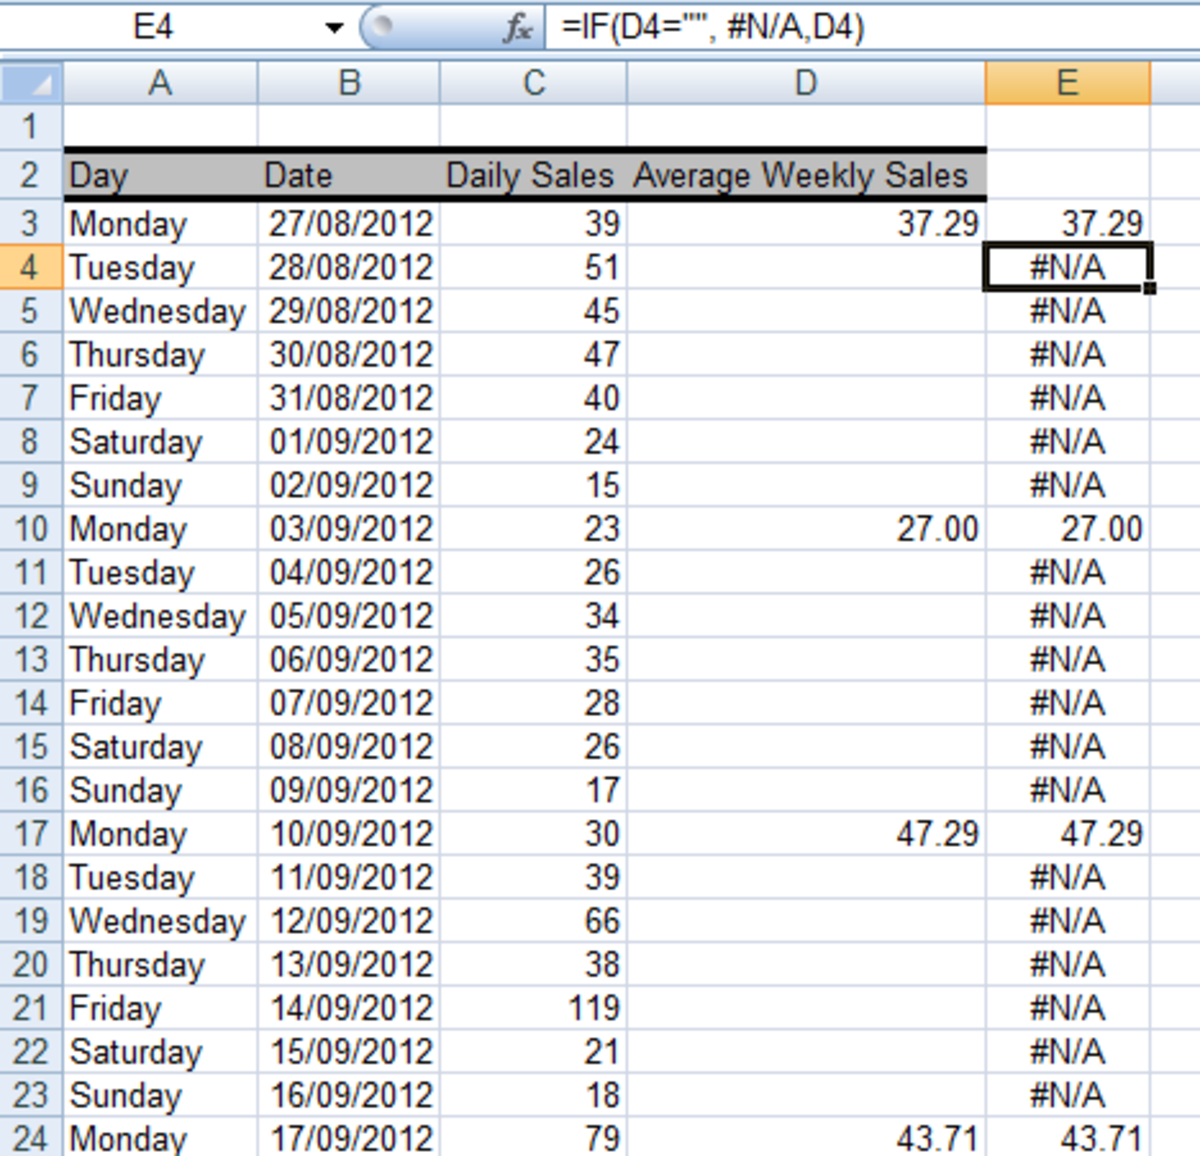 Ediblewildsus  Sweet How To Get Excel  And  To Ignore Empty Cells In A Chart Or  With Exquisite Using The If Function In A Formula To Convert Empty Cells To Na With Captivating Excel Monte Carlo Also Excel Case Function In Addition How To Insert Excel Into Powerpoint And Make A Chart In Excel As Well As Excel Vba Concatenate Additionally How To Use The Countif Function In Excel From Turbofuturecom With Ediblewildsus  Exquisite How To Get Excel  And  To Ignore Empty Cells In A Chart Or  With Captivating Using The If Function In A Formula To Convert Empty Cells To Na And Sweet Excel Monte Carlo Also Excel Case Function In Addition How To Insert Excel Into Powerpoint From Turbofuturecom